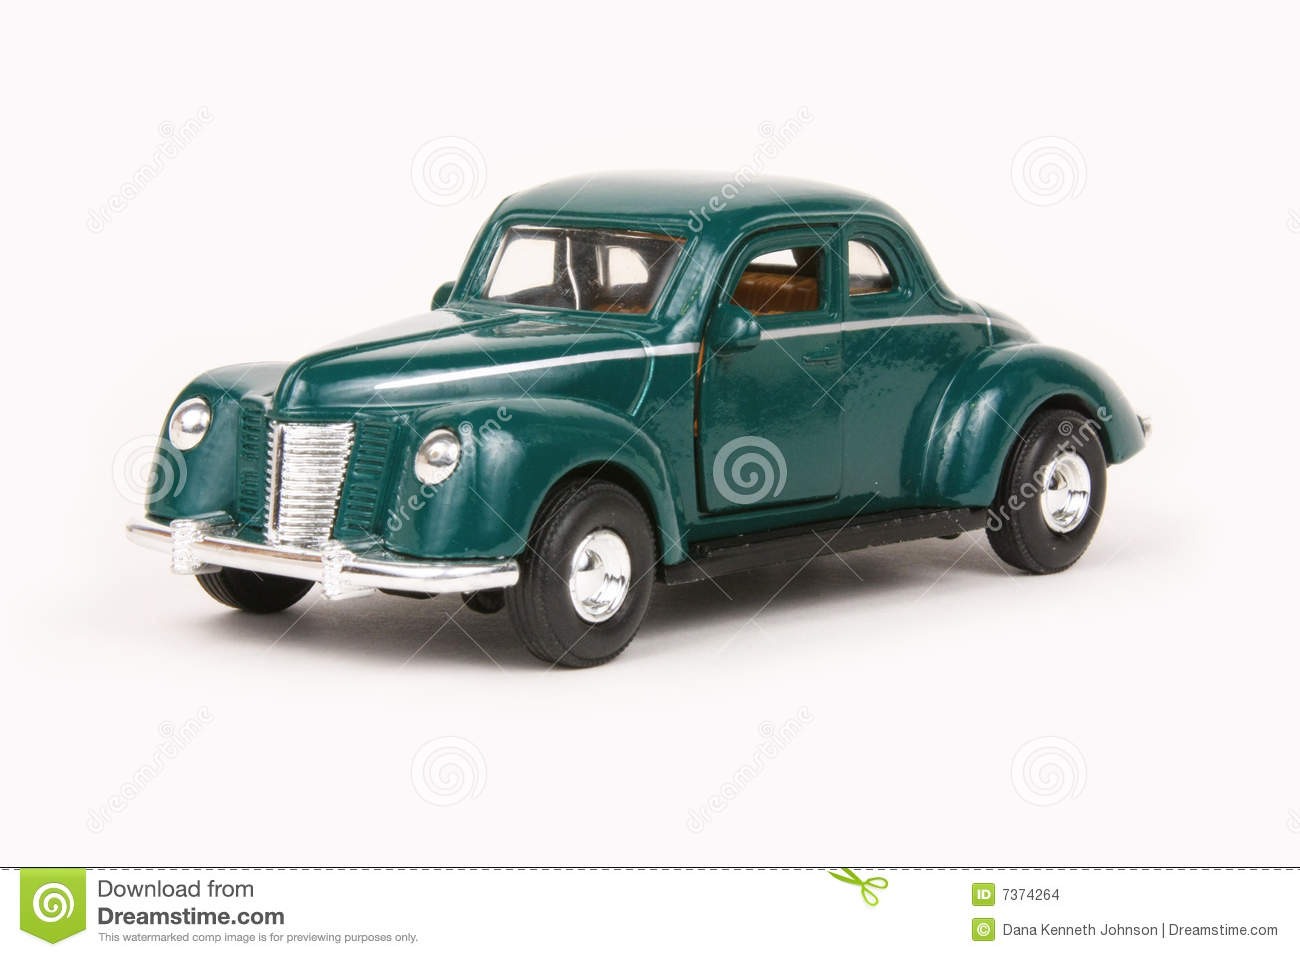 1940 ford coupe tootsietoy hard body 1 32 scale diecast car left